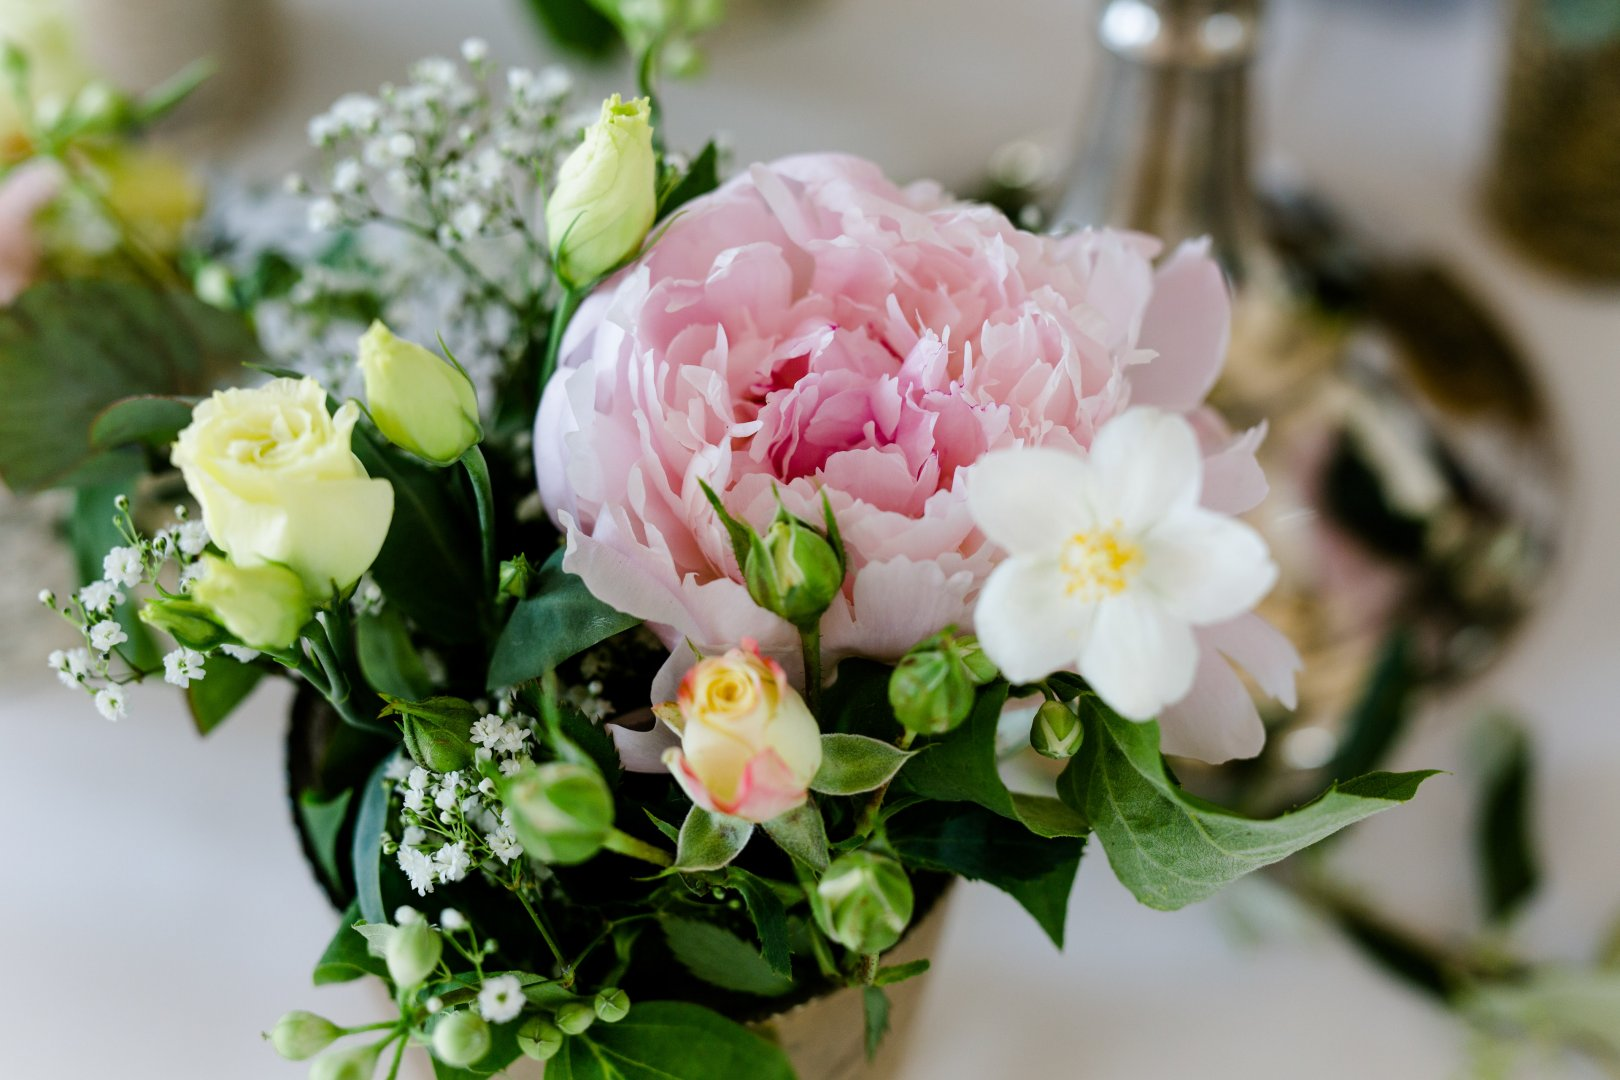 Flower Flowering plant Bouquet Floristry Flower Arranging Plant Pink Centrepiece Cut flowers Petal Floral design Peony Artificial flower Rose Rose family Garden roses Chinese peony Gardenia Rose order common peony Camellia Begonia